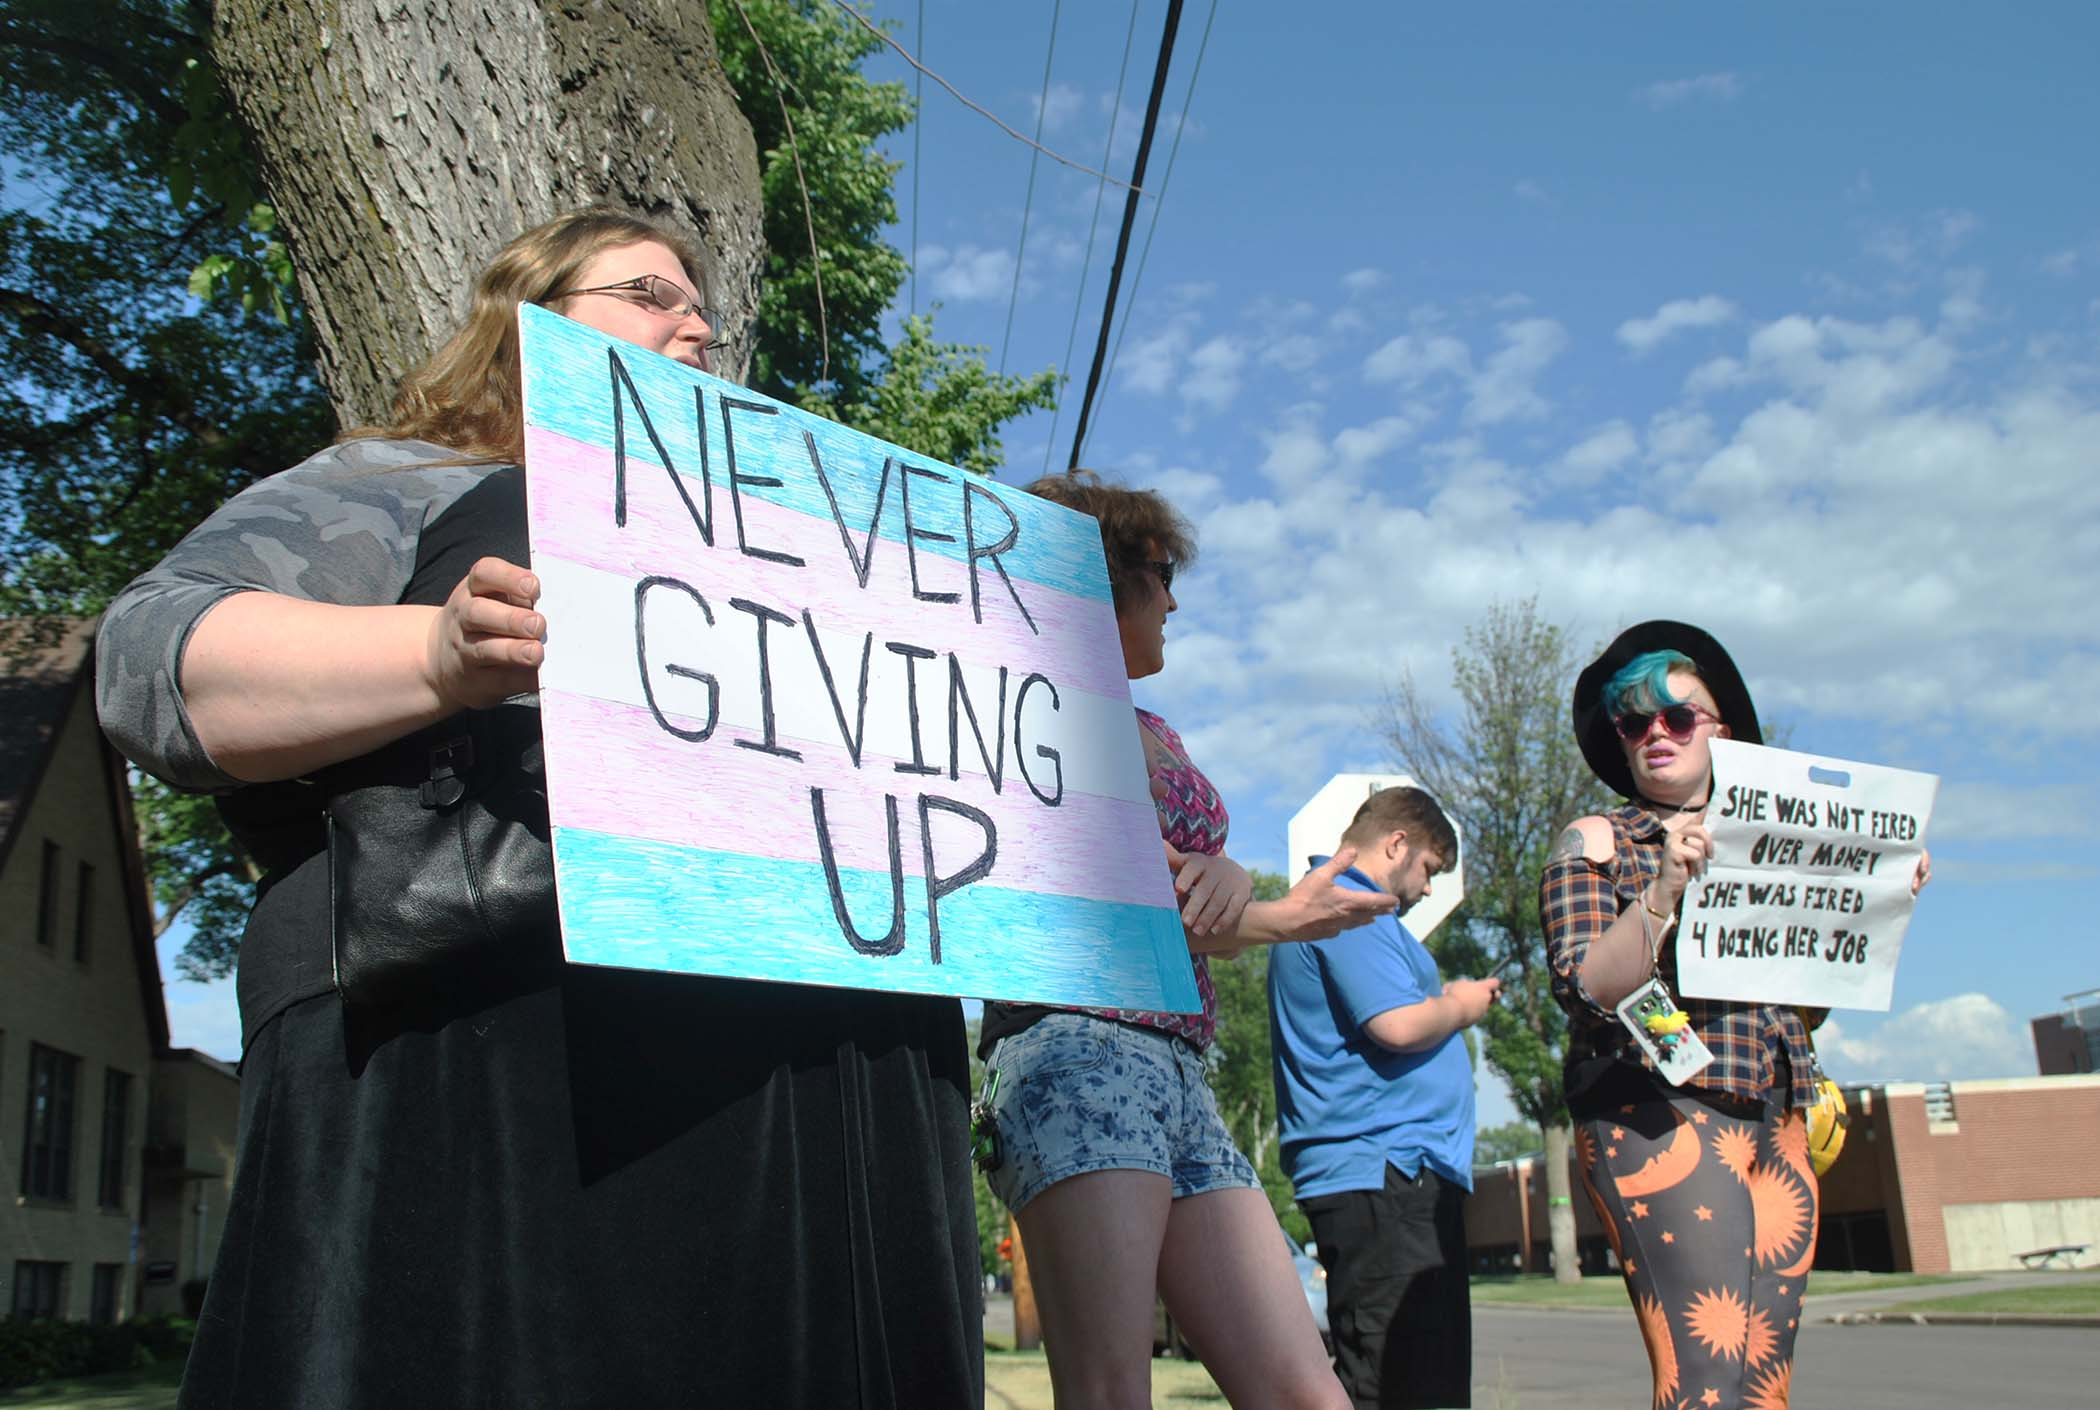 Protesters gather outside of Plymouth Congregational United Church of Christ - photo by C.S. Hagen